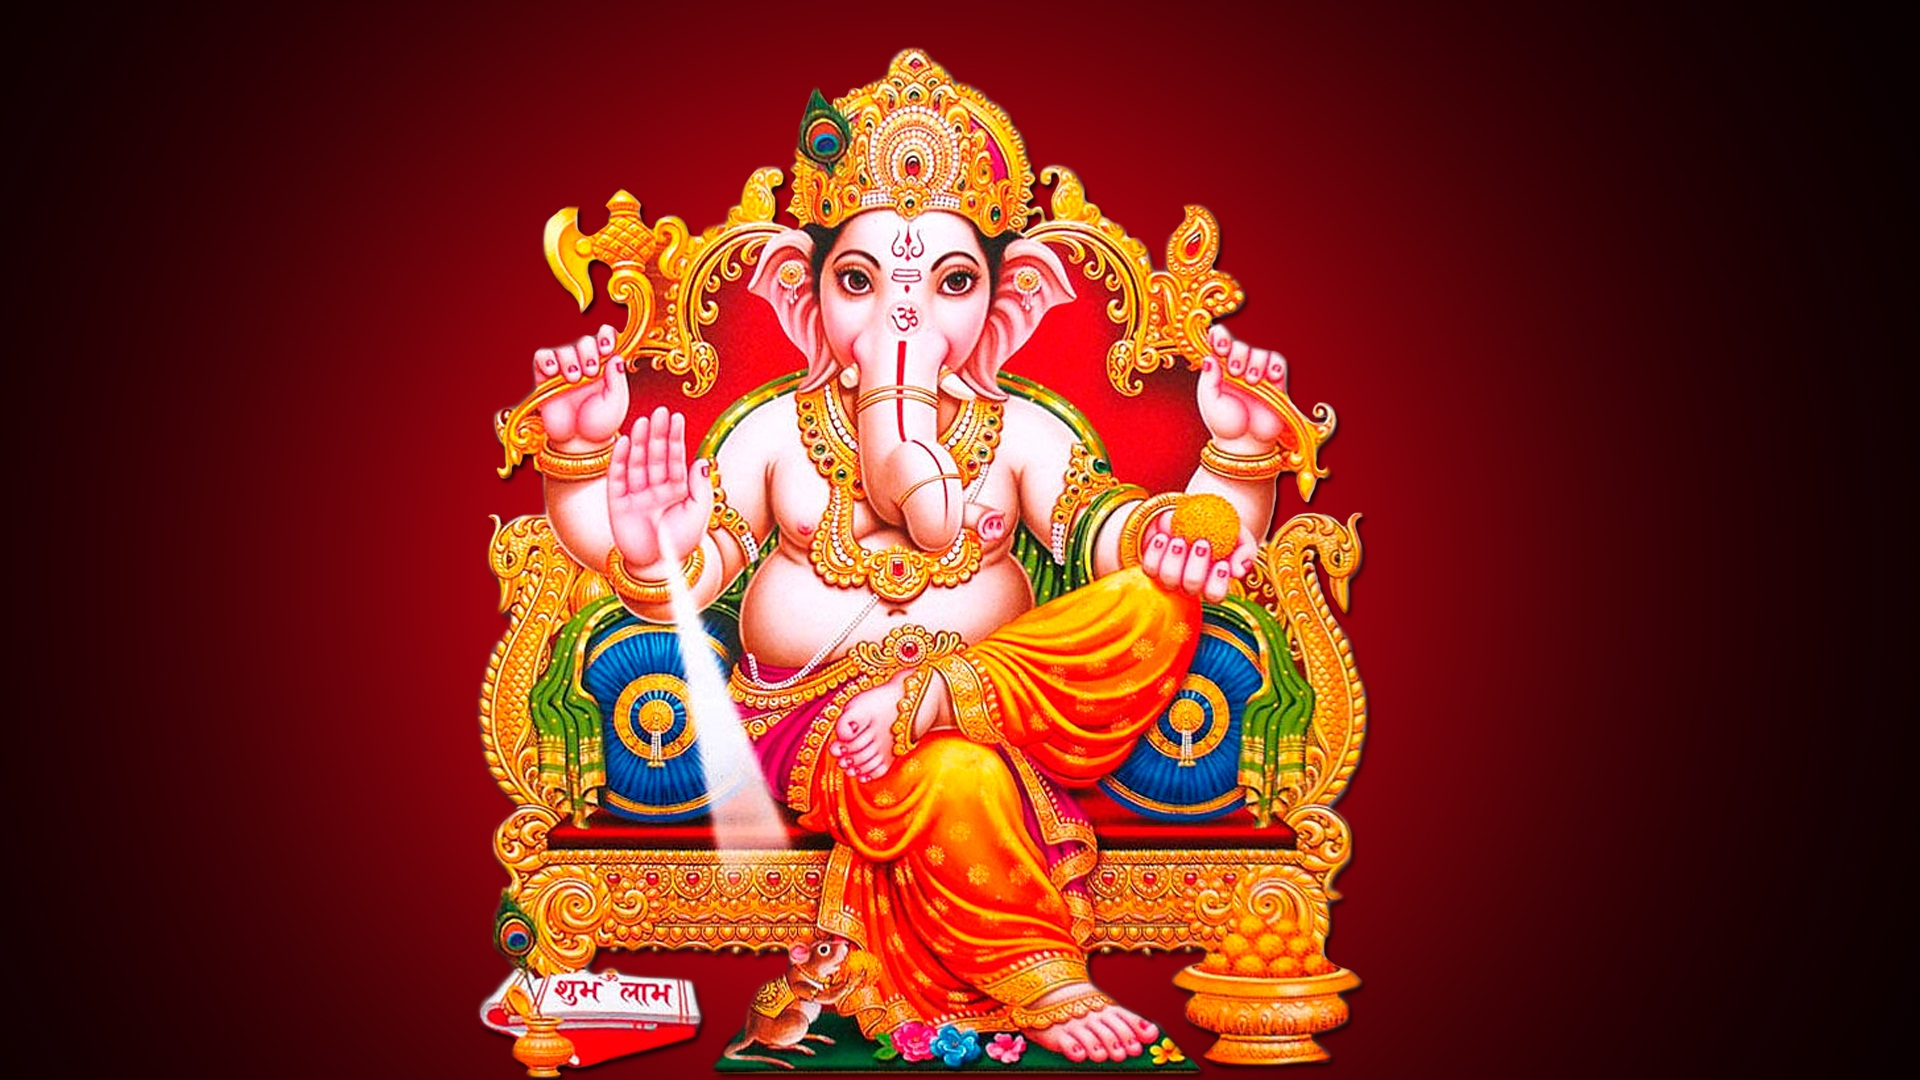 Ganesh images lord ganesh photos pics hd wallpapers - God images wallpapers ...